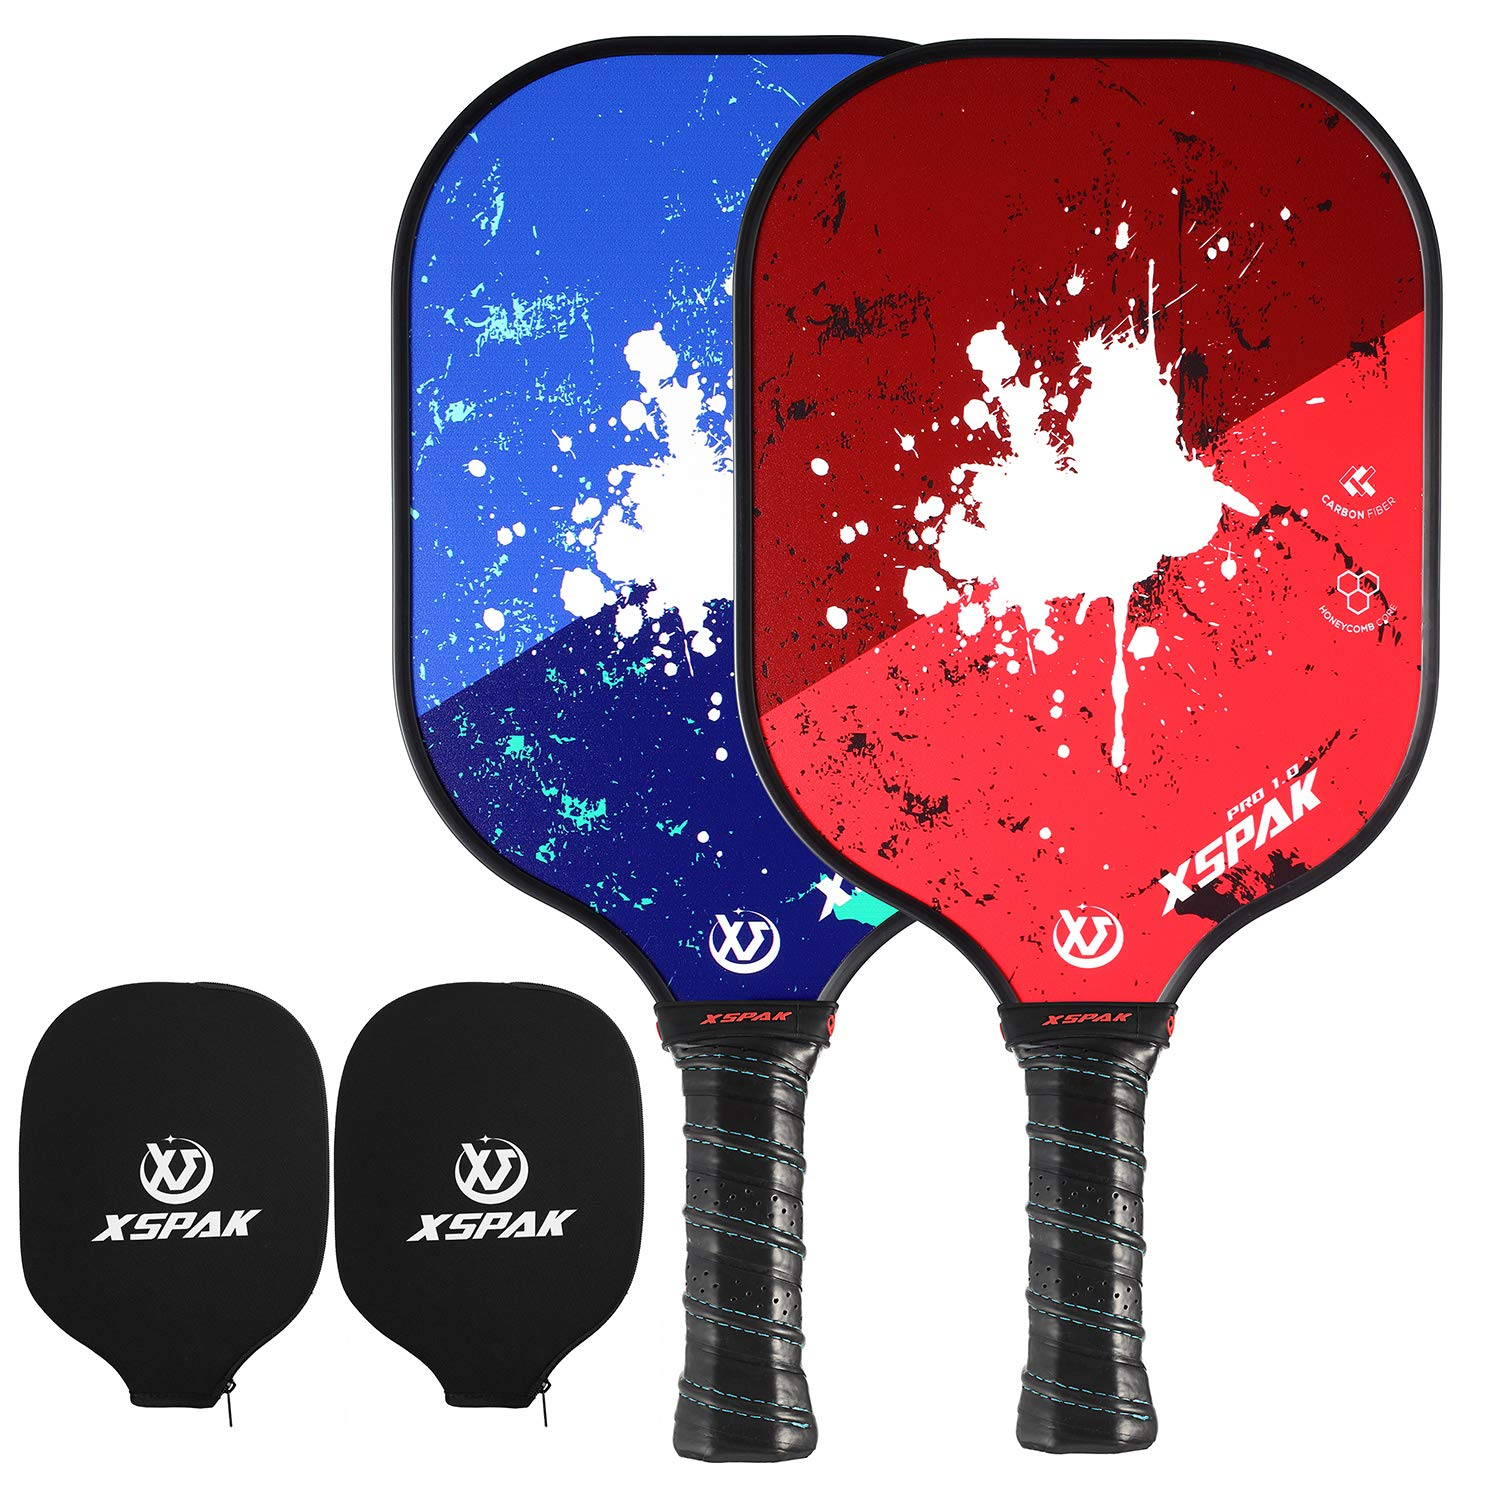 XS XSPAK Pickleball Paddle Set of 2 - Lightweight Graphite/Carbon Fiber Face & Polypropylene Honeycomb Composite Core Paddles Sets Including Racket Cover, USAPA Approved by XS XSPAK